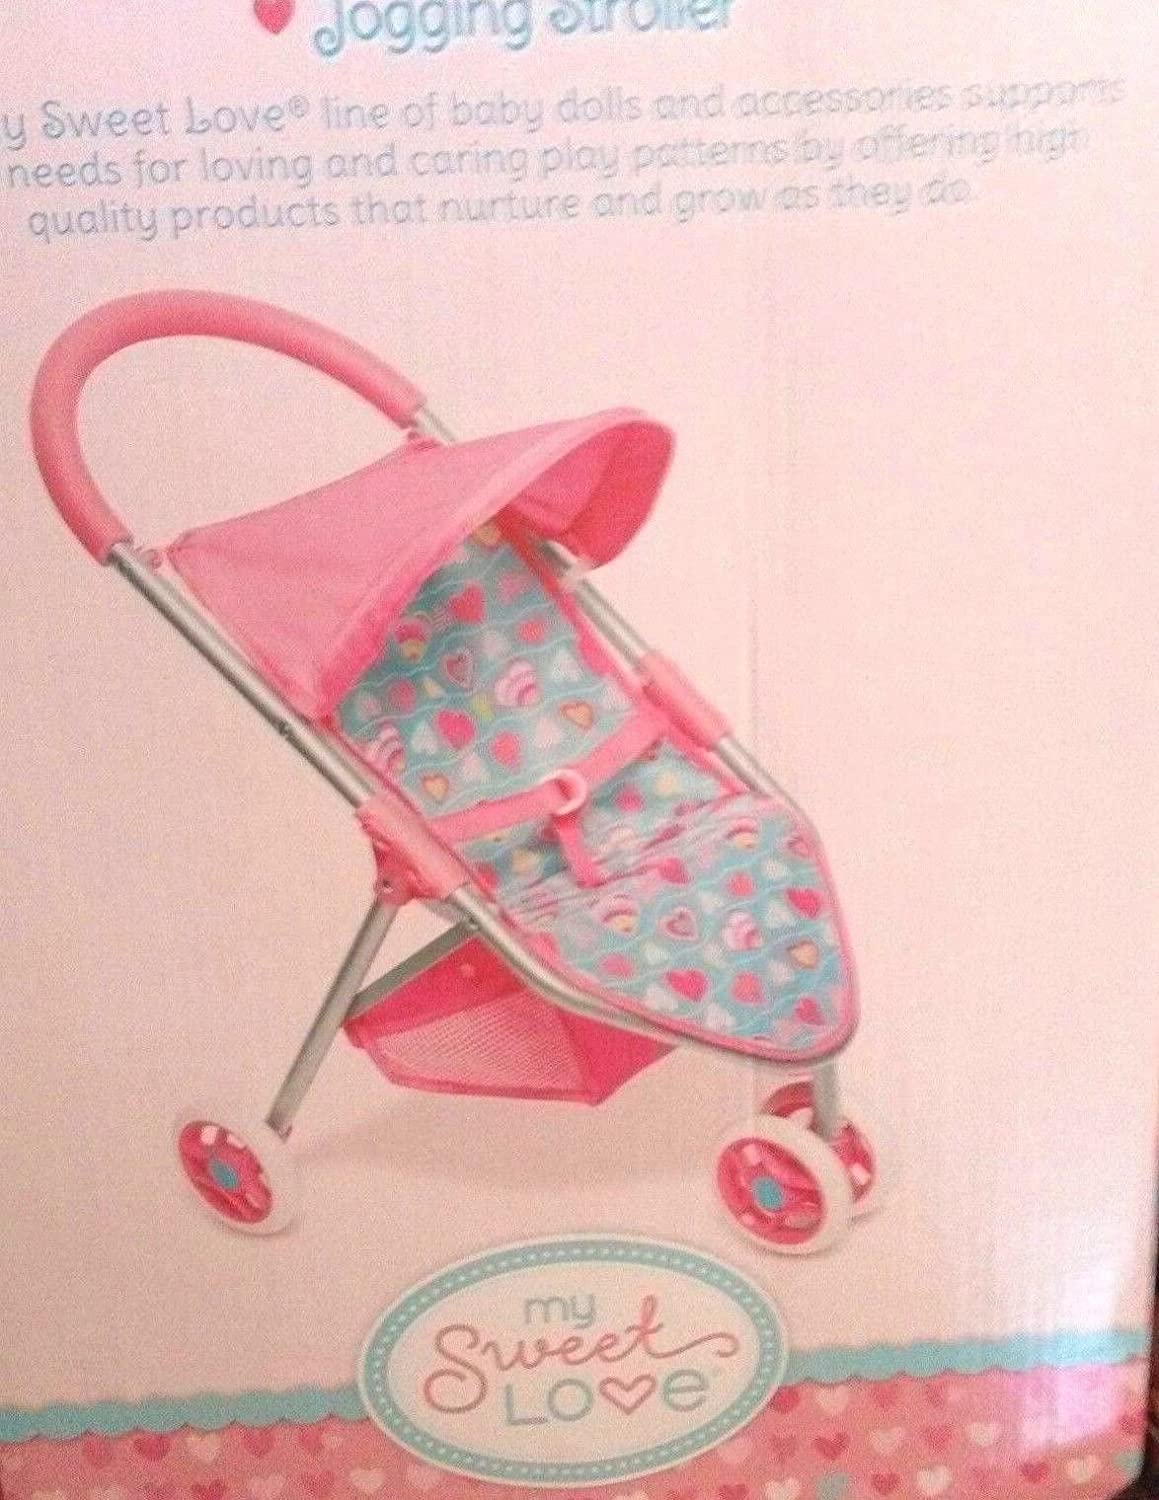 My Sweet Love Doll Hearts Jogging Stroller Wa-Mart Stores Inc.